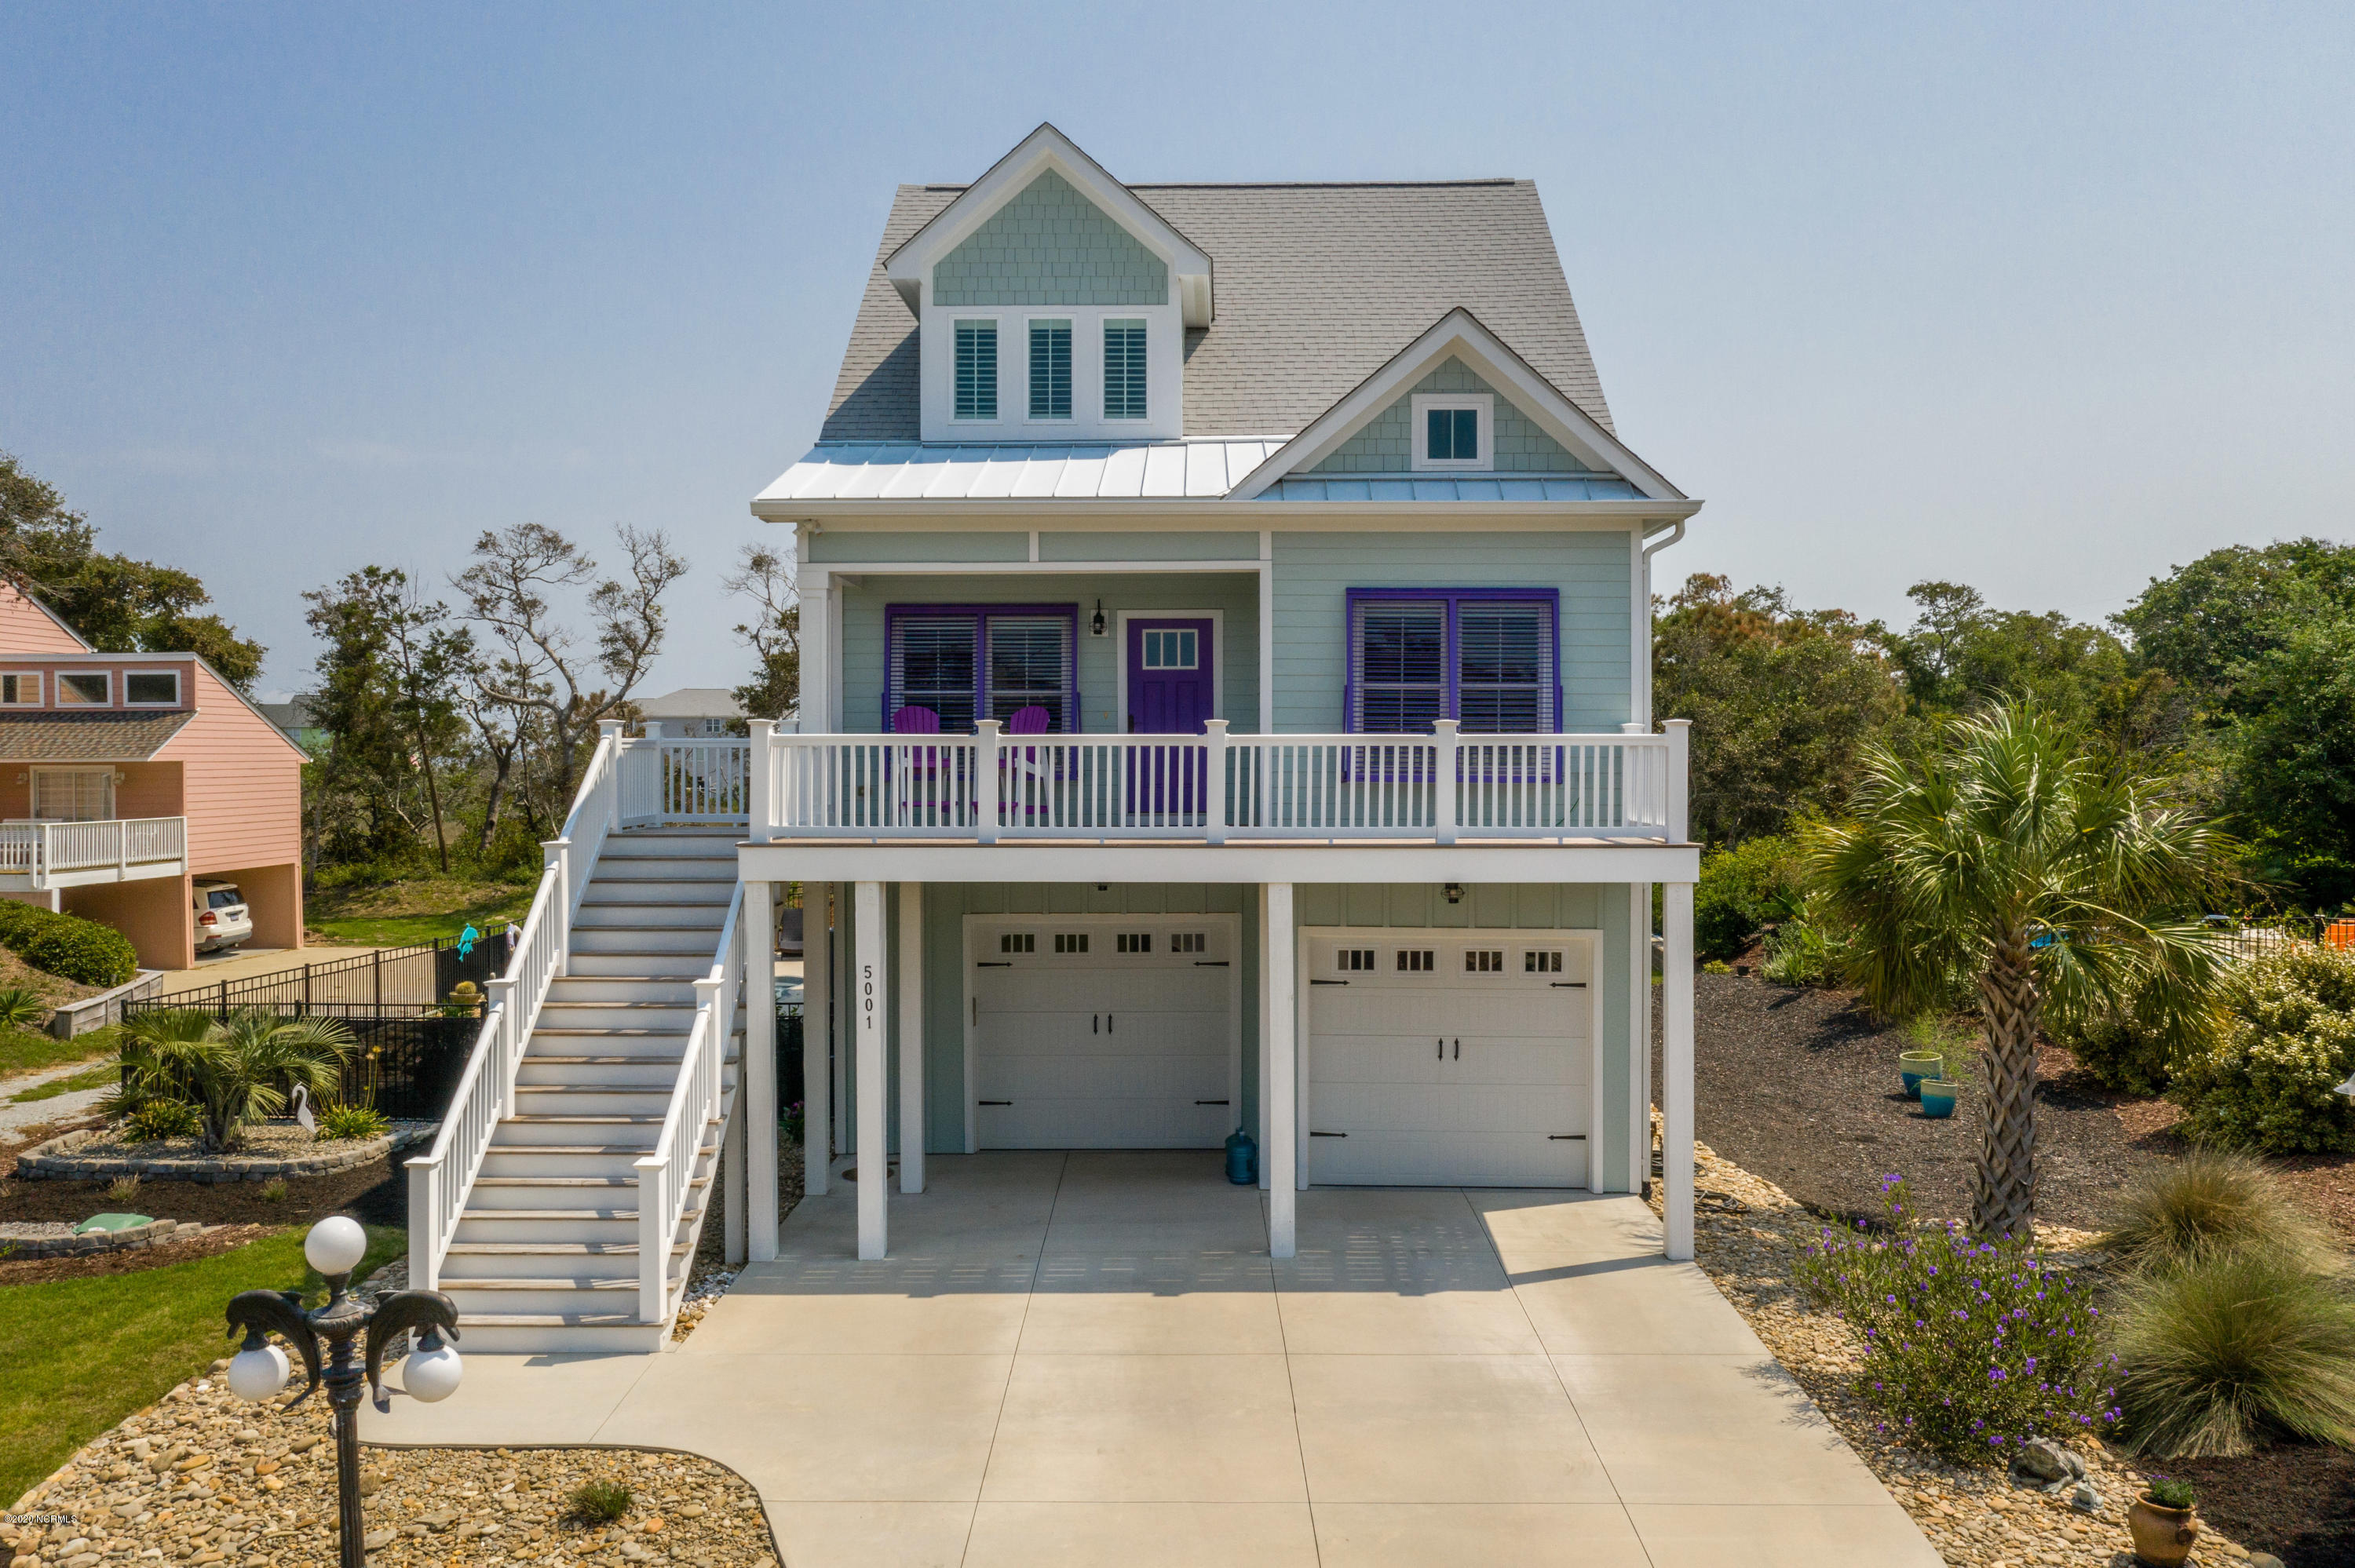 5001 Bogue Sound Court, Emerald Isle, North Carolina 28594, 4 Bedrooms Bedrooms, ,3 BathroomsBathrooms,Residential,For Sale,Bogue Sound,100234331